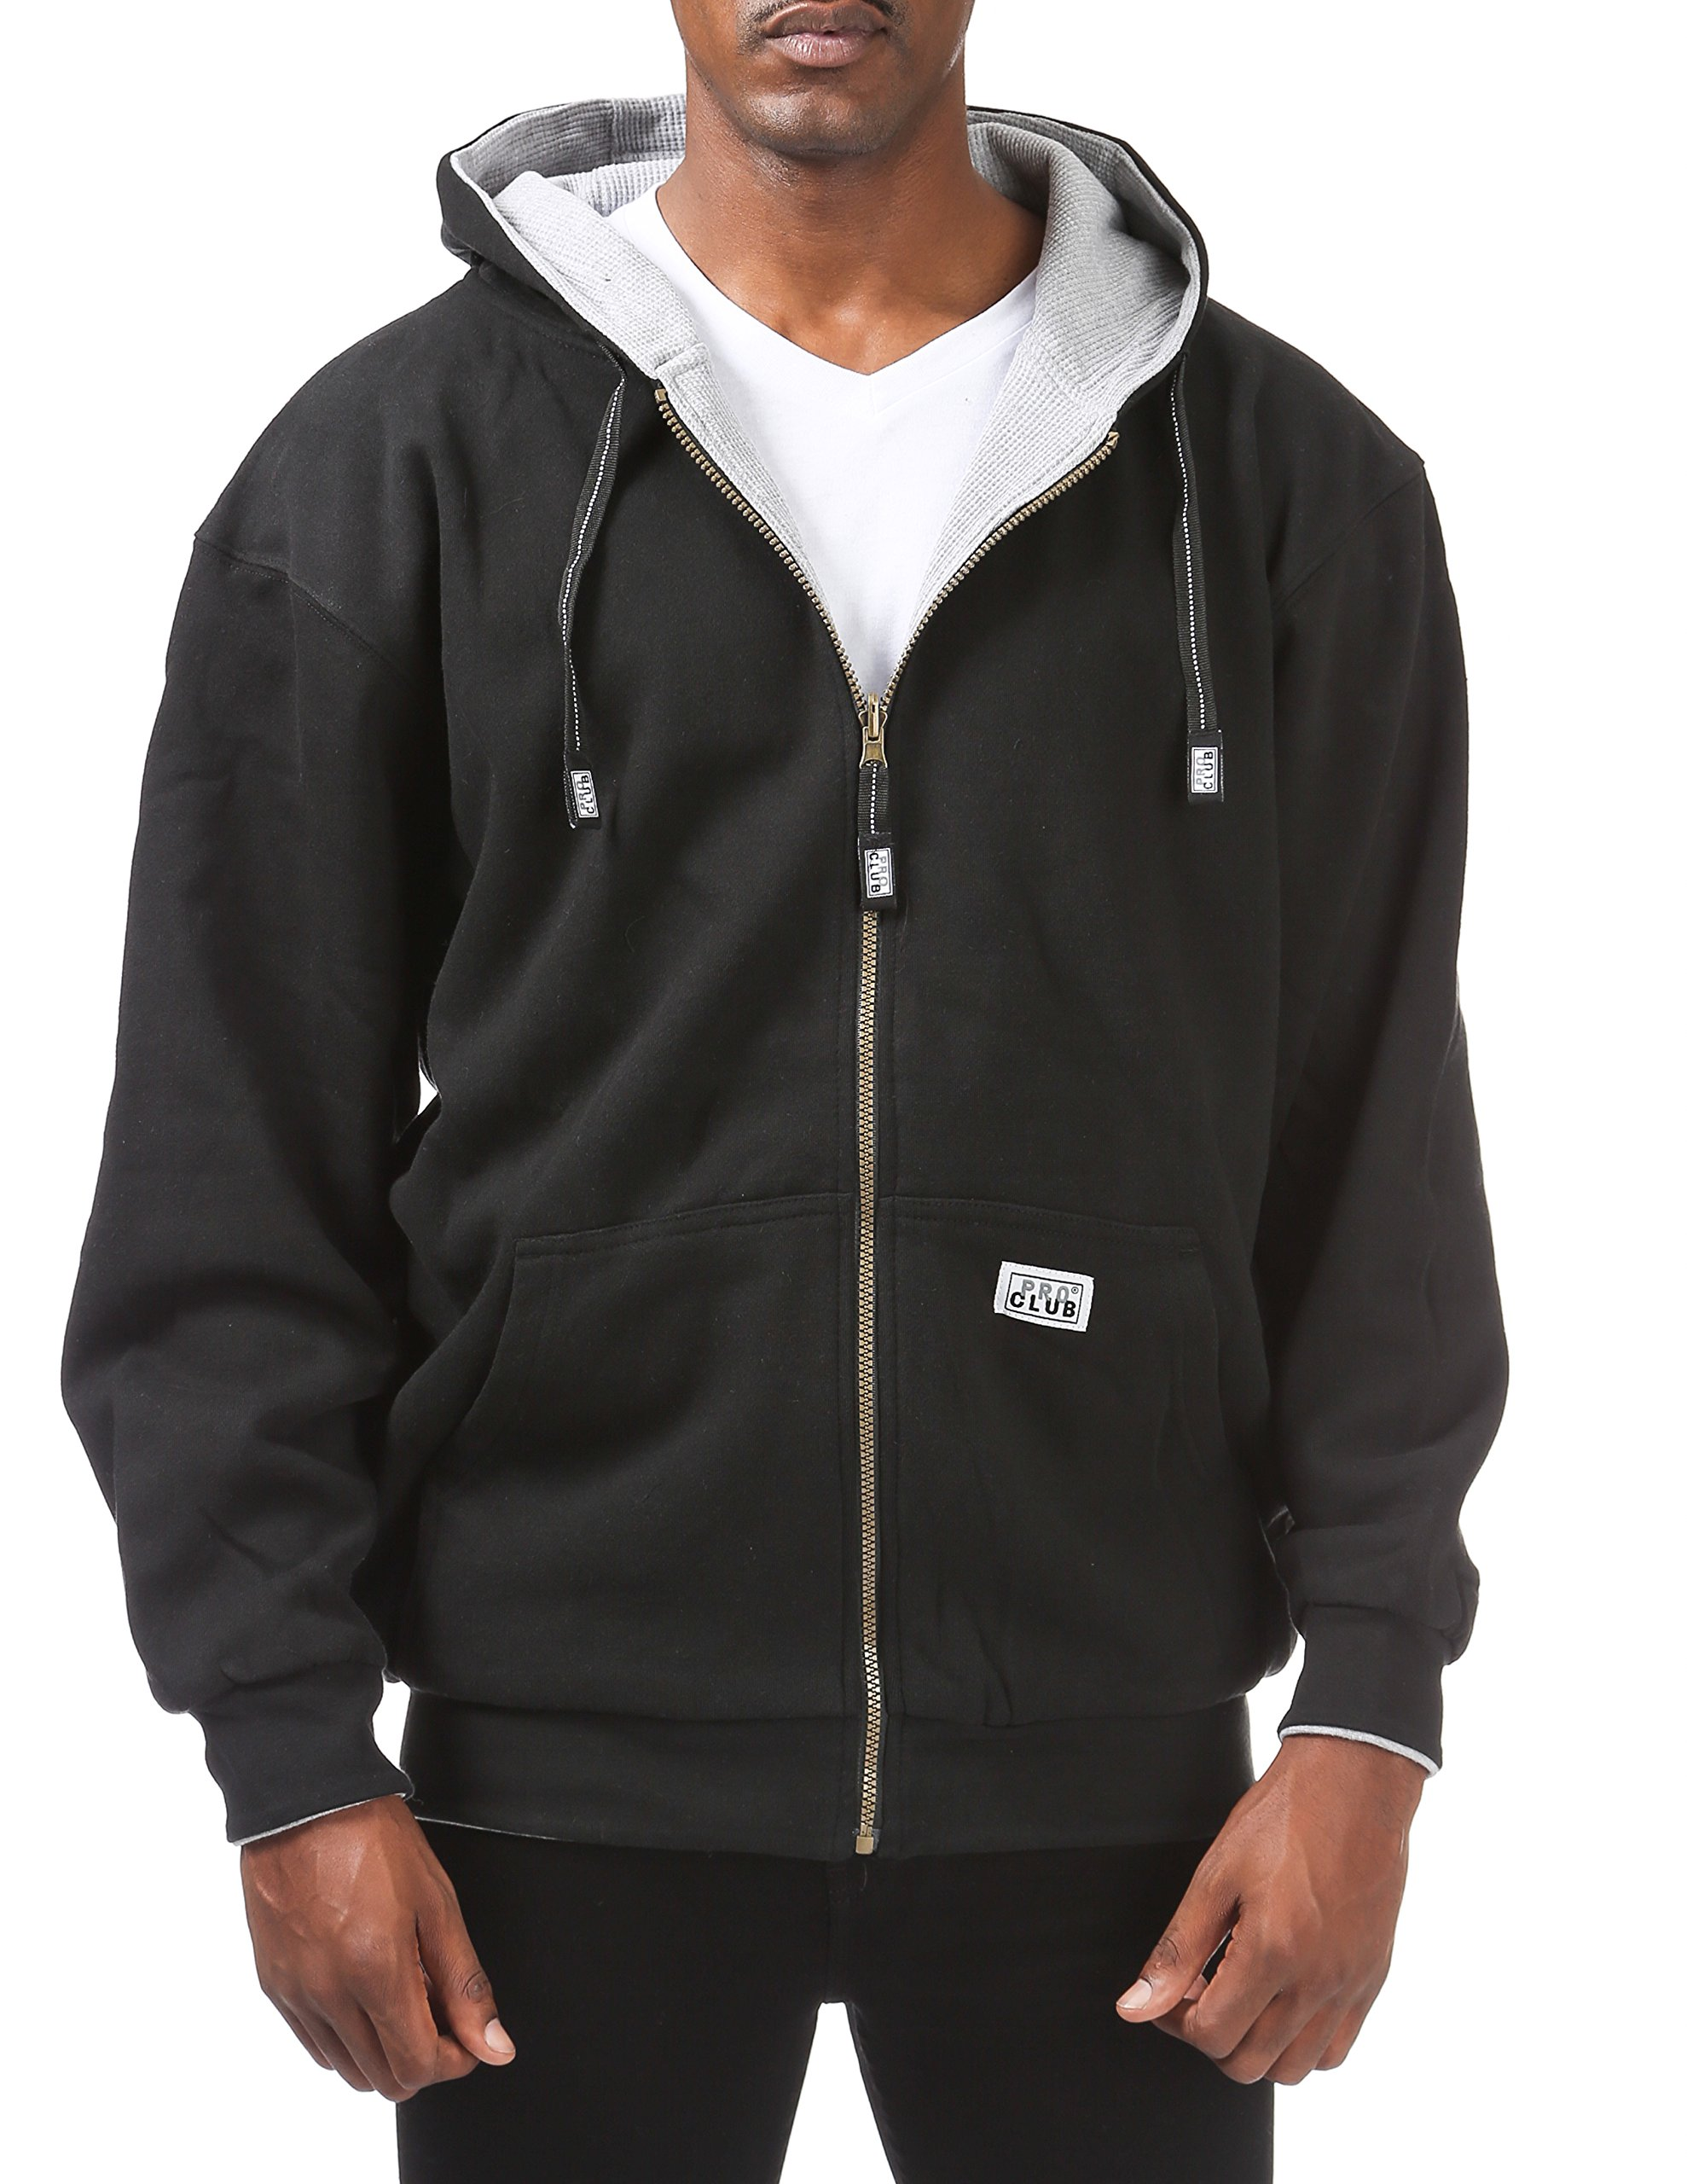 Pro Club Men's Full Zip Reversible Fleece and Thermal Hoodie, Large, Black/Heather Gray